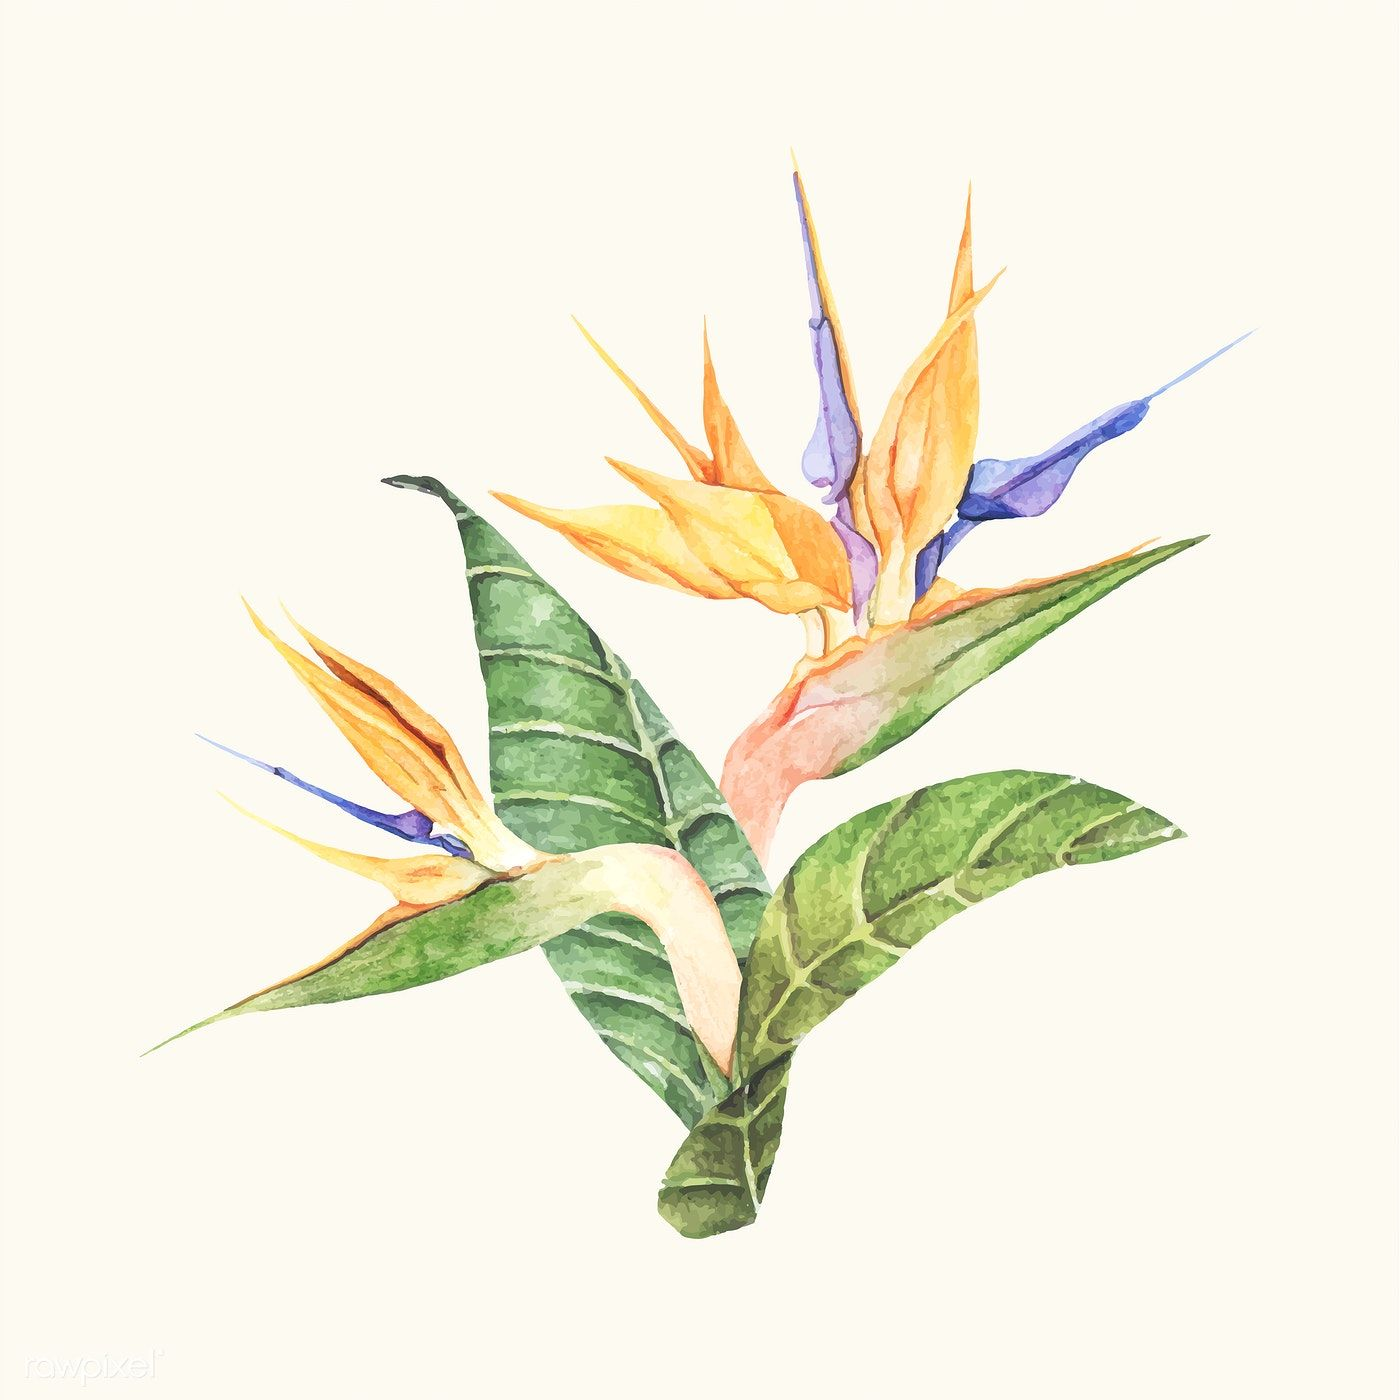 Hand Drawn Bird Of Paradise Flower Isolated Free Image By Rawpixel Com Birds Of Paradise Flower How To Draw Hands Free Vector Illustration